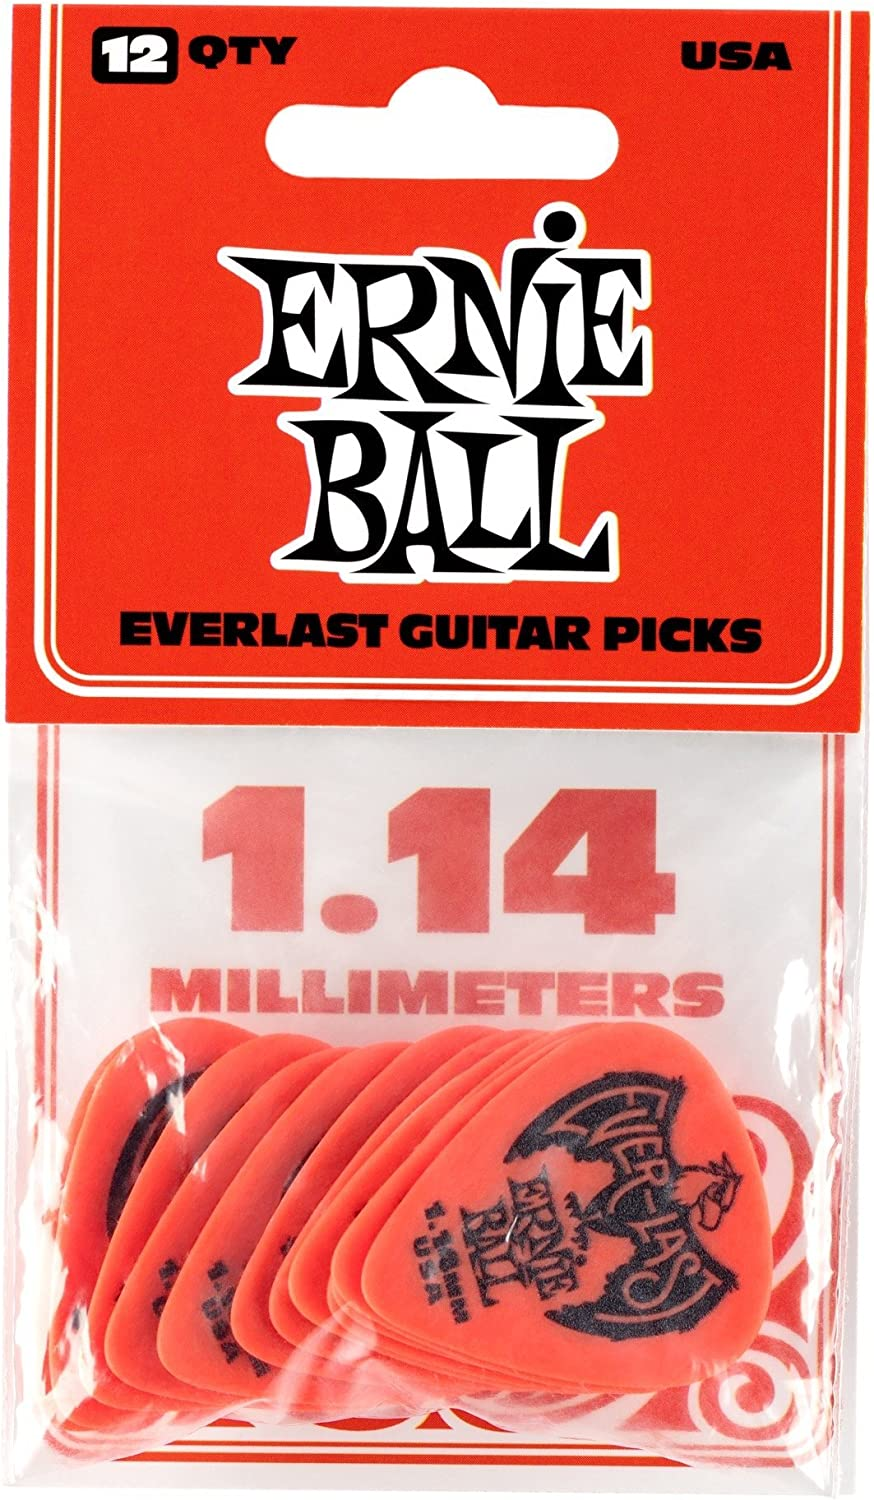 9179 Ernie Ball Pack mediators everlast